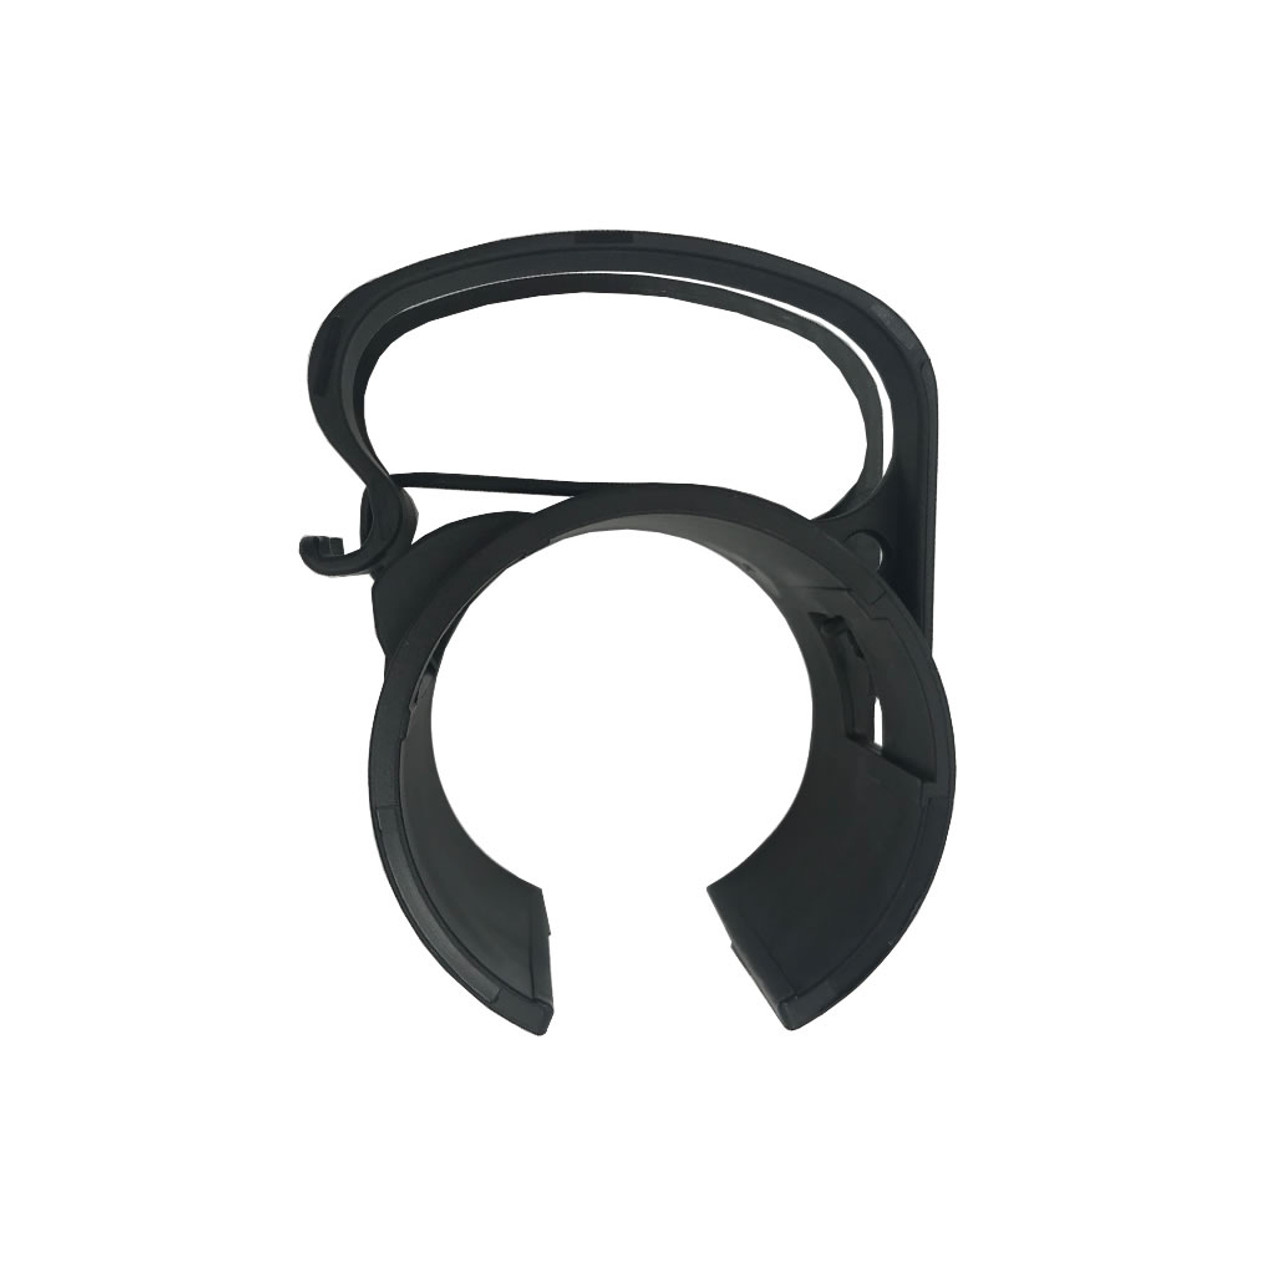 Global Truss DT Snap On Black Cable Management Clip- Top View